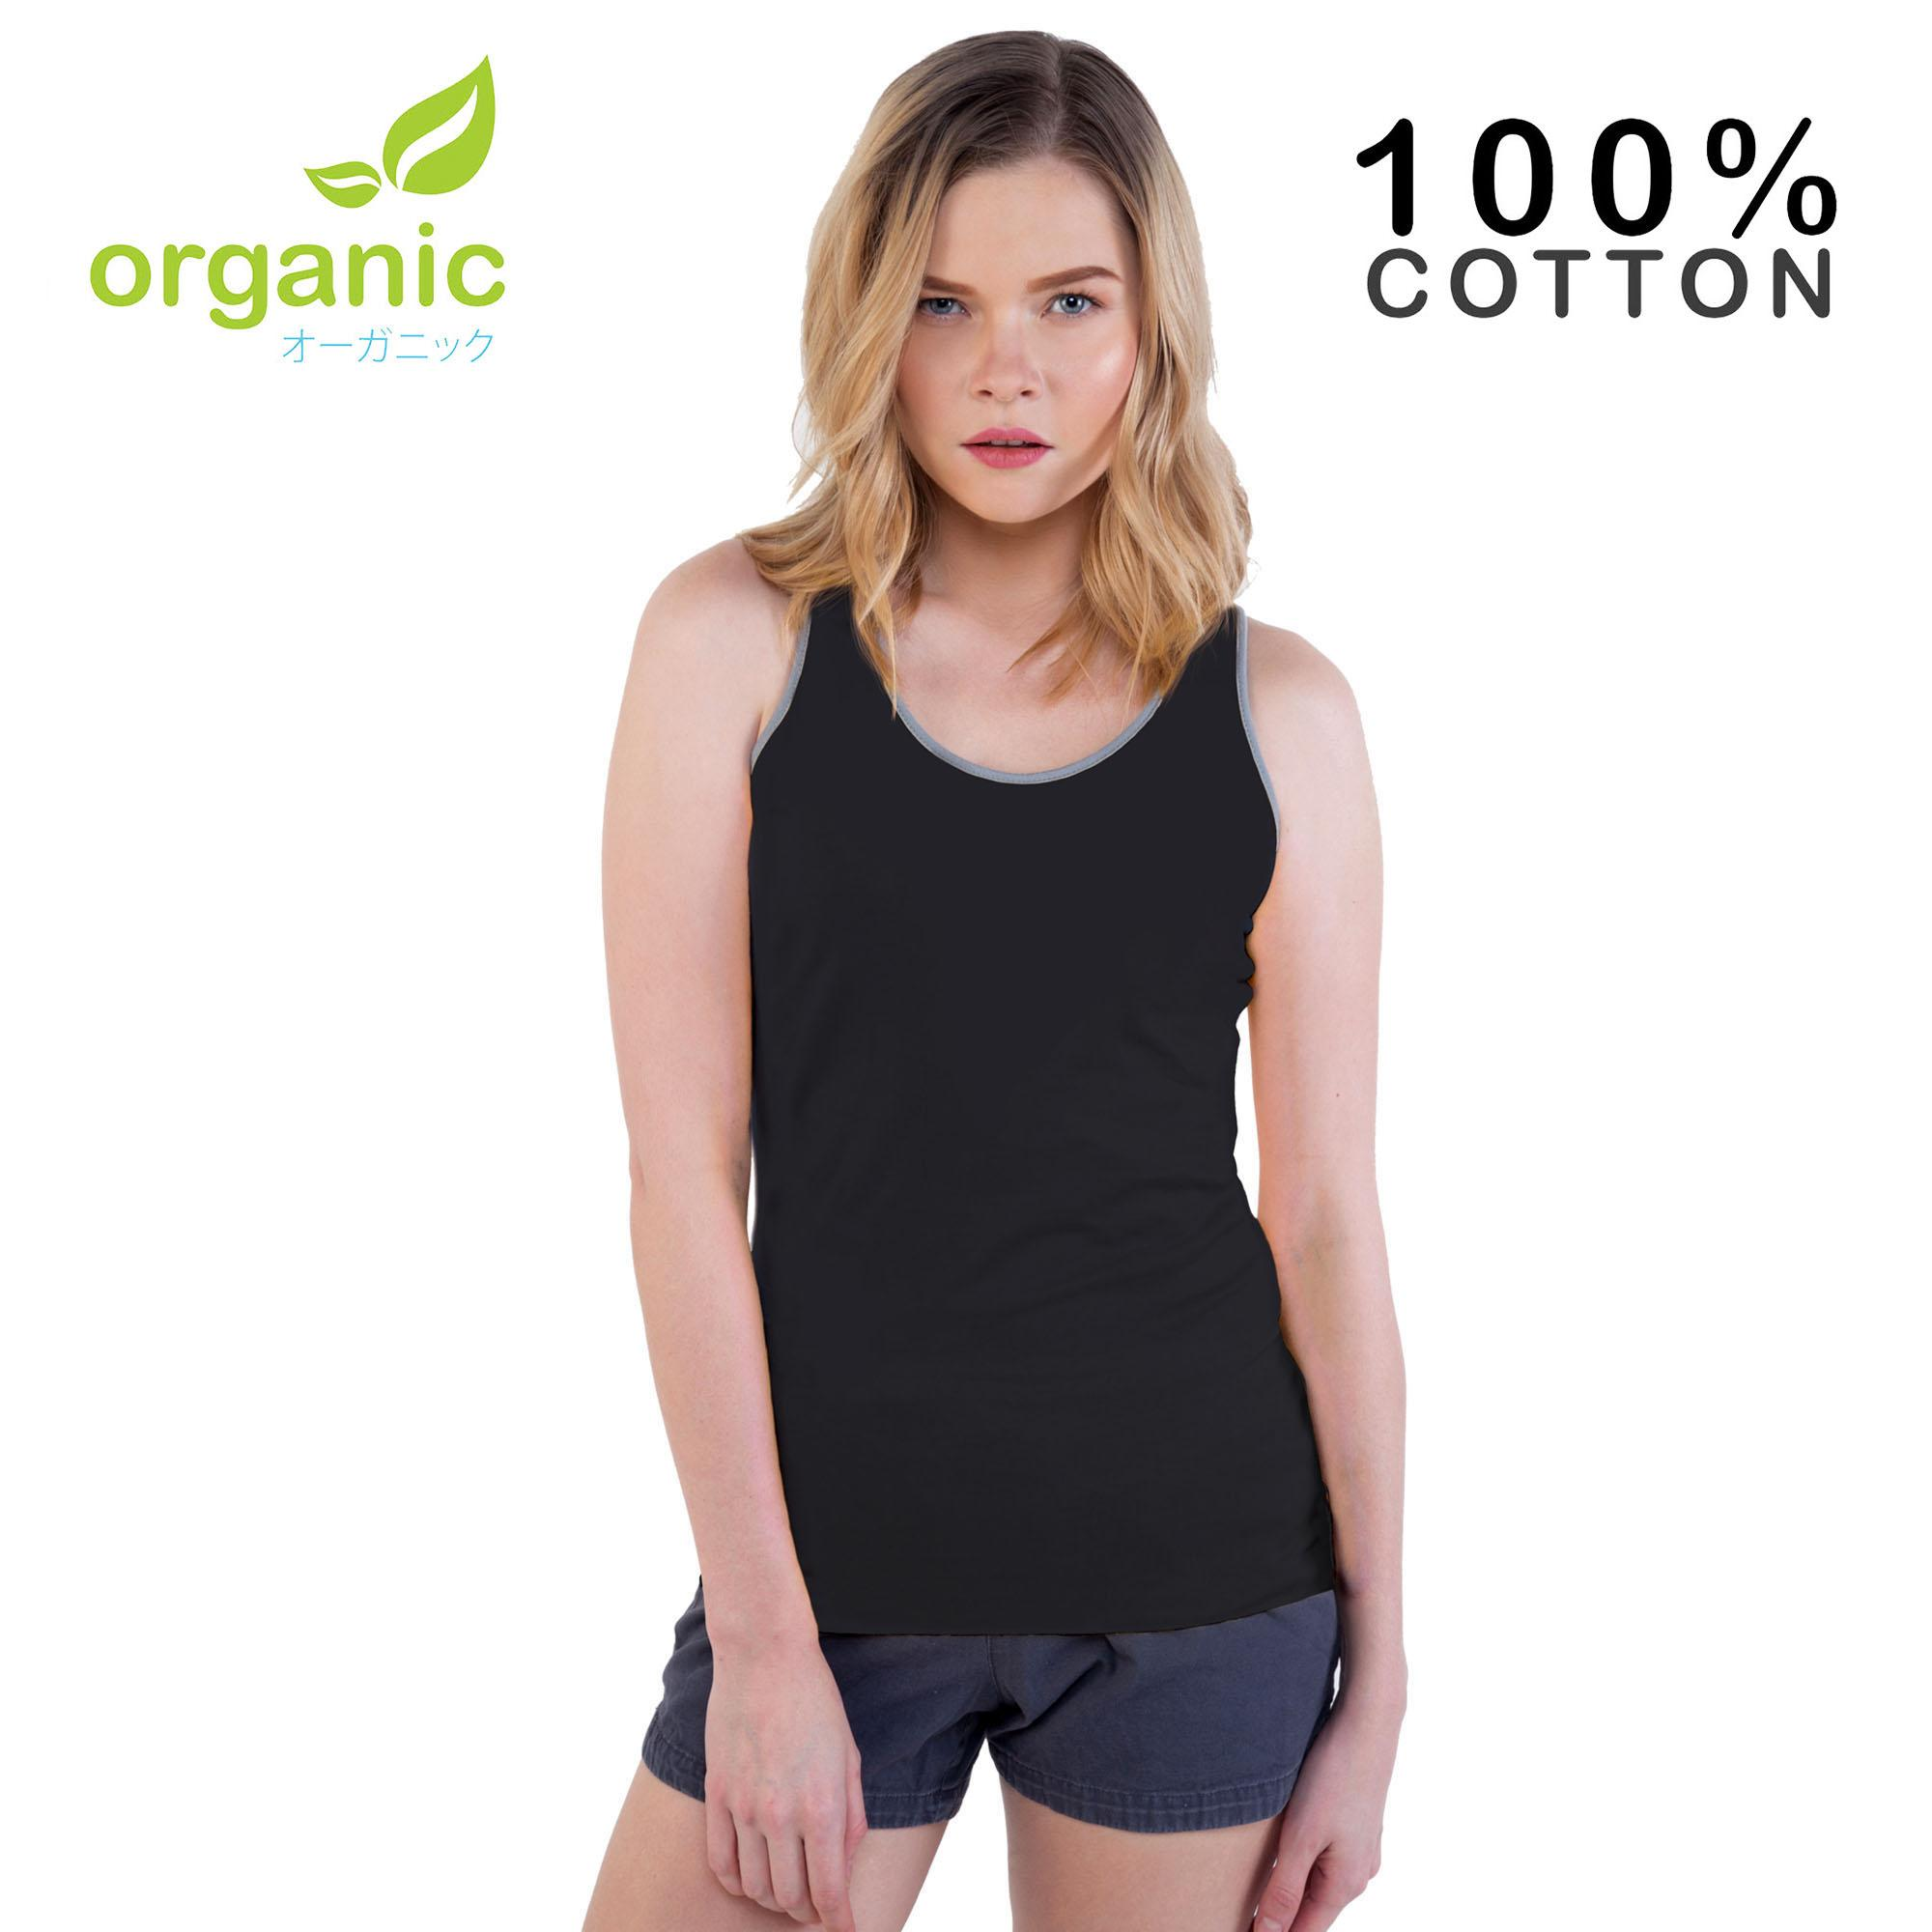 dc065412fa20 Organic Ladies 100% Cotton Tank Top Sando Racerback Fashionable Tees t  shirt tshirt shirts tshirts